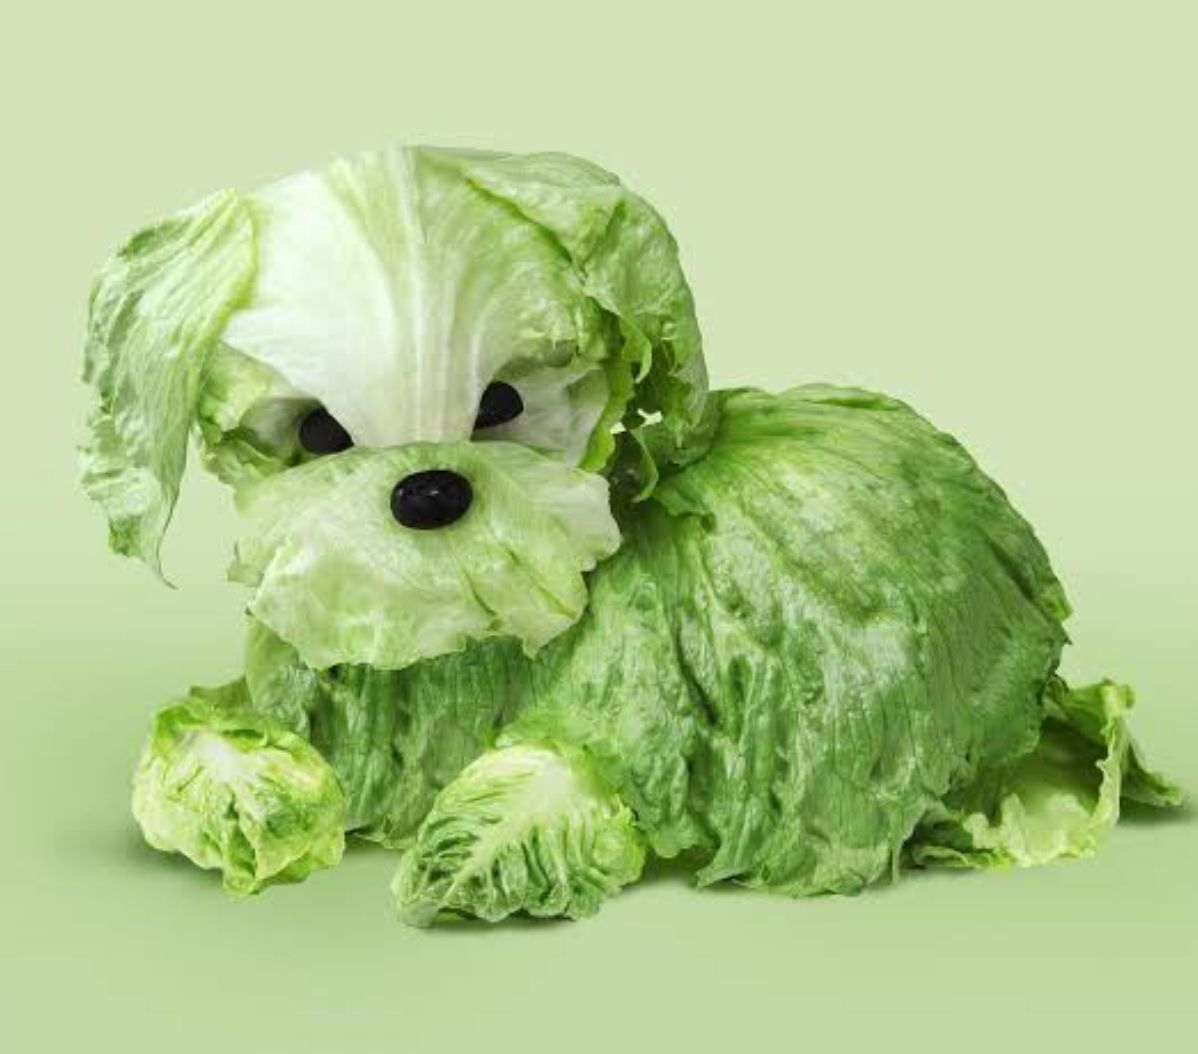 Lettuce is a healthy source of choline, a nutrient crucial to the health of your brain that plays an important role in memory function.  #healthyeating #healthyfood #superfood #healthyliving #healthylifestyle #healthy #brainhealth https://t.co/9GywgyIyWe